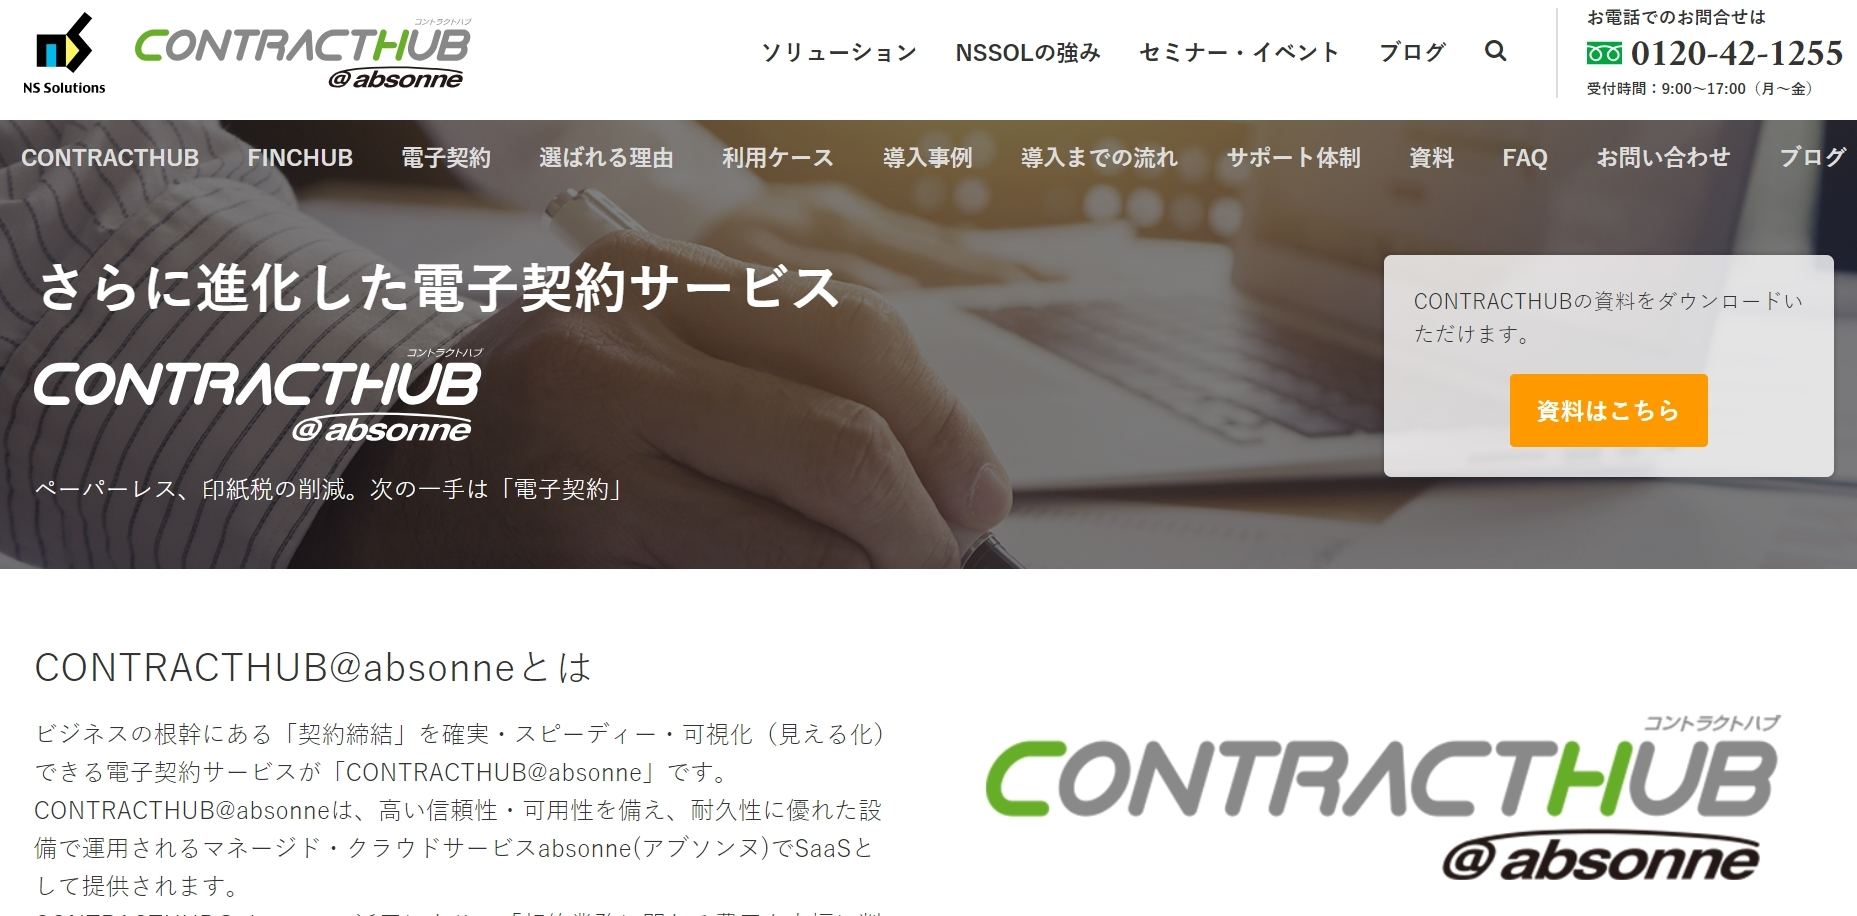 CONTRACTHUB@absonneサービス紹介サイト